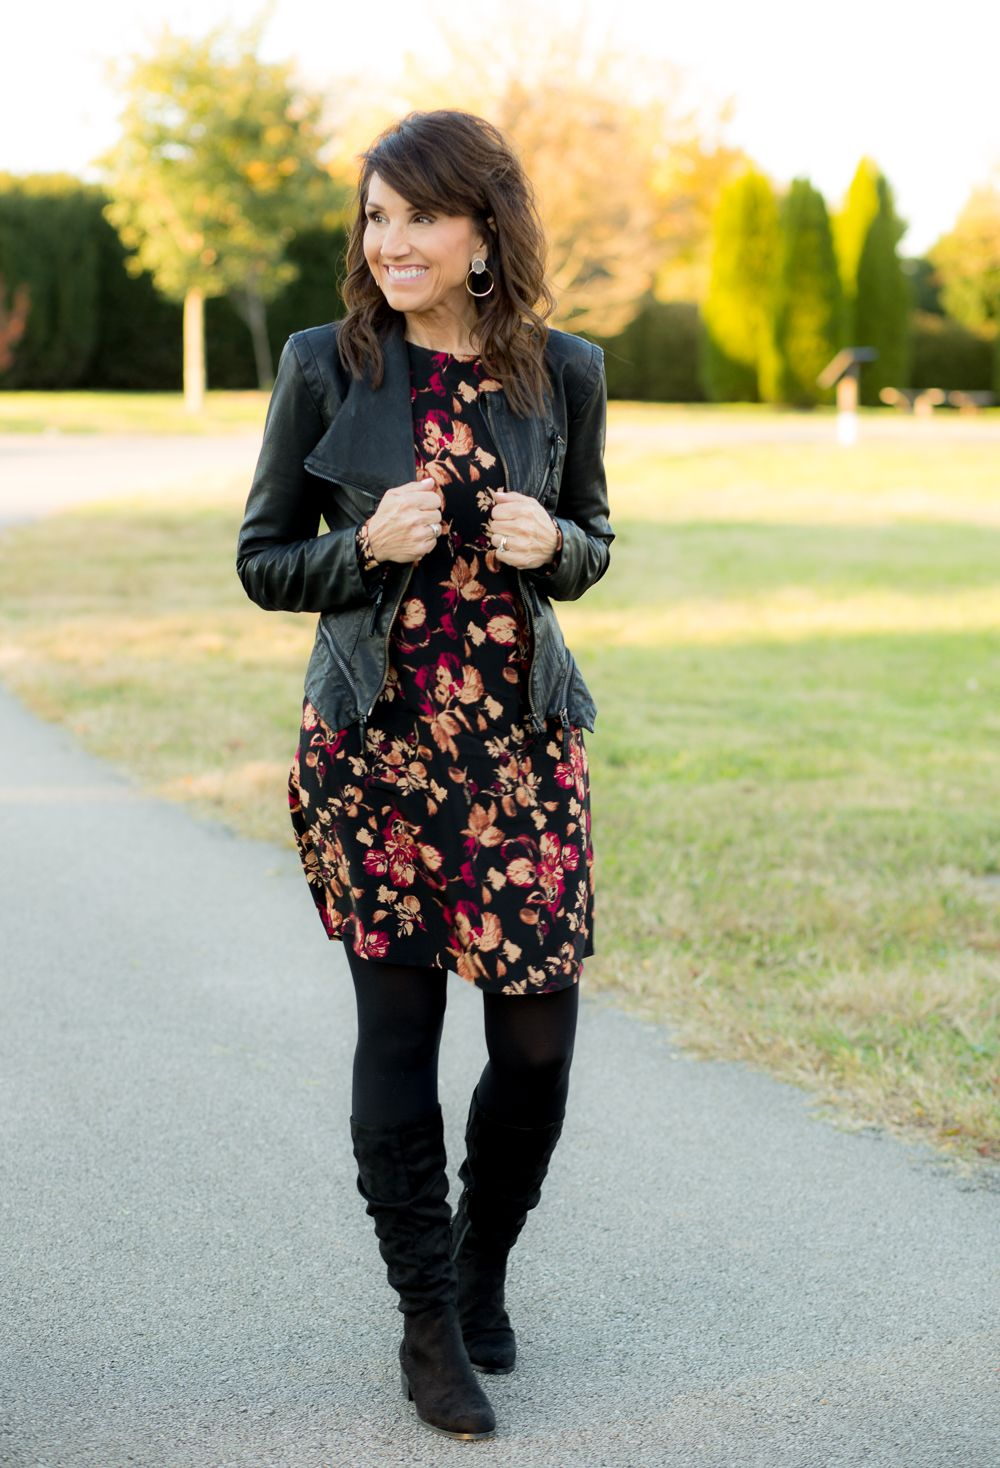 Slouchy Boot Trend Cyndi Spivey Black Floral Dress Outfit Fashion Dresses With Tights And Boots [ 1468 x 1000 Pixel ]